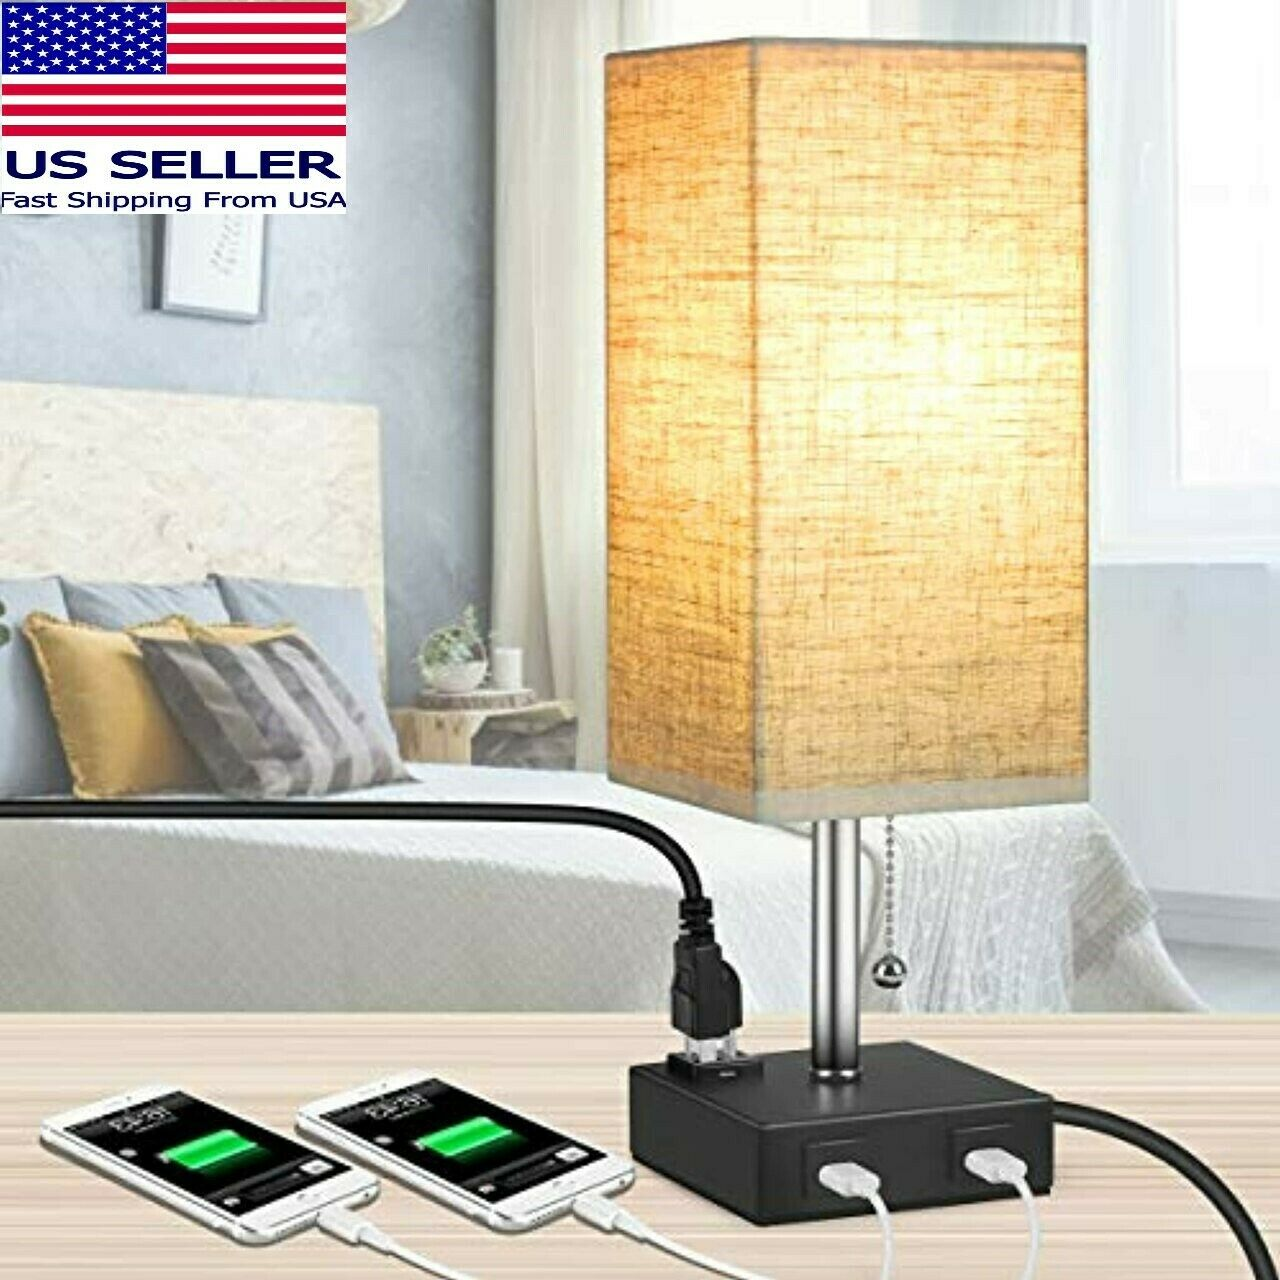 MOICO Bedside Modern Table Nightstand Lamp w/ 2 USB Charging Ports & 1 AC Outlet Home & Garden